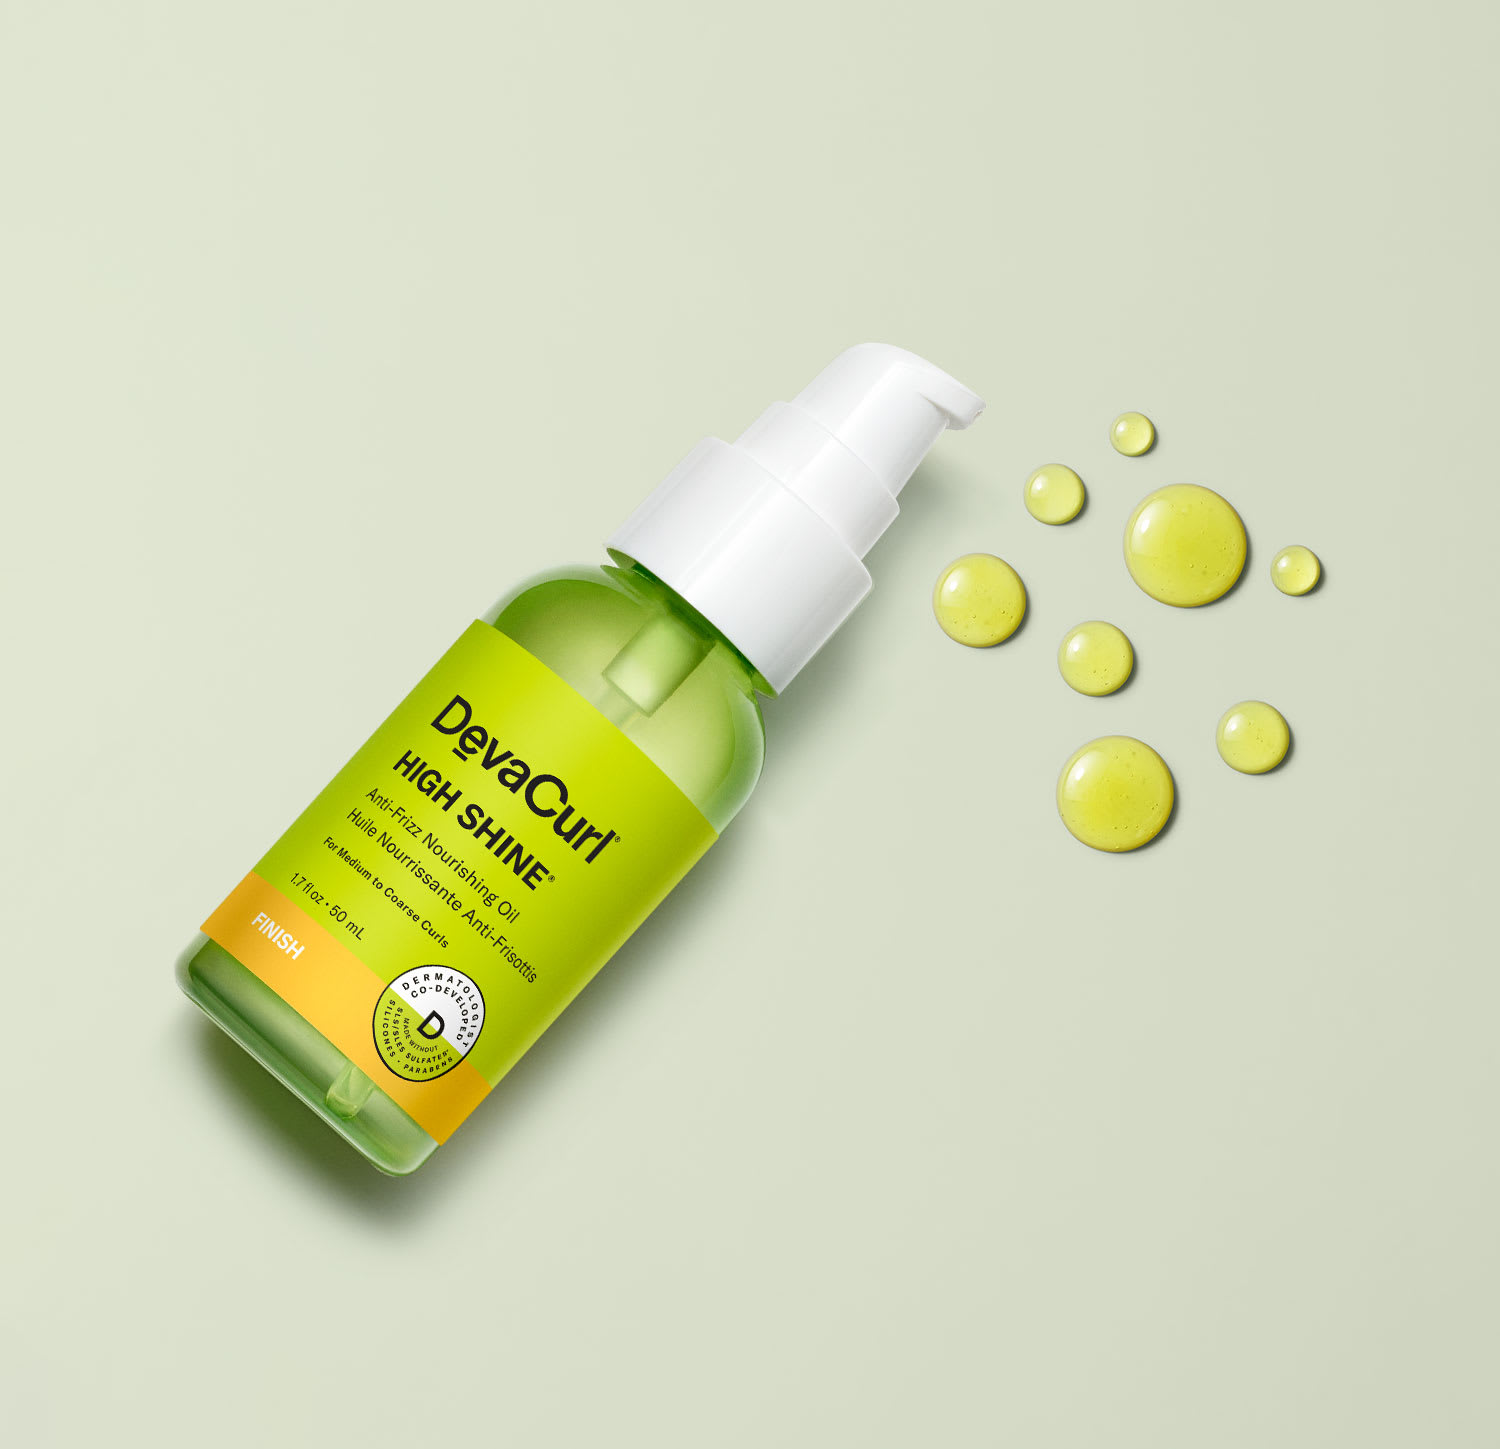 High Shine® bottle with goop